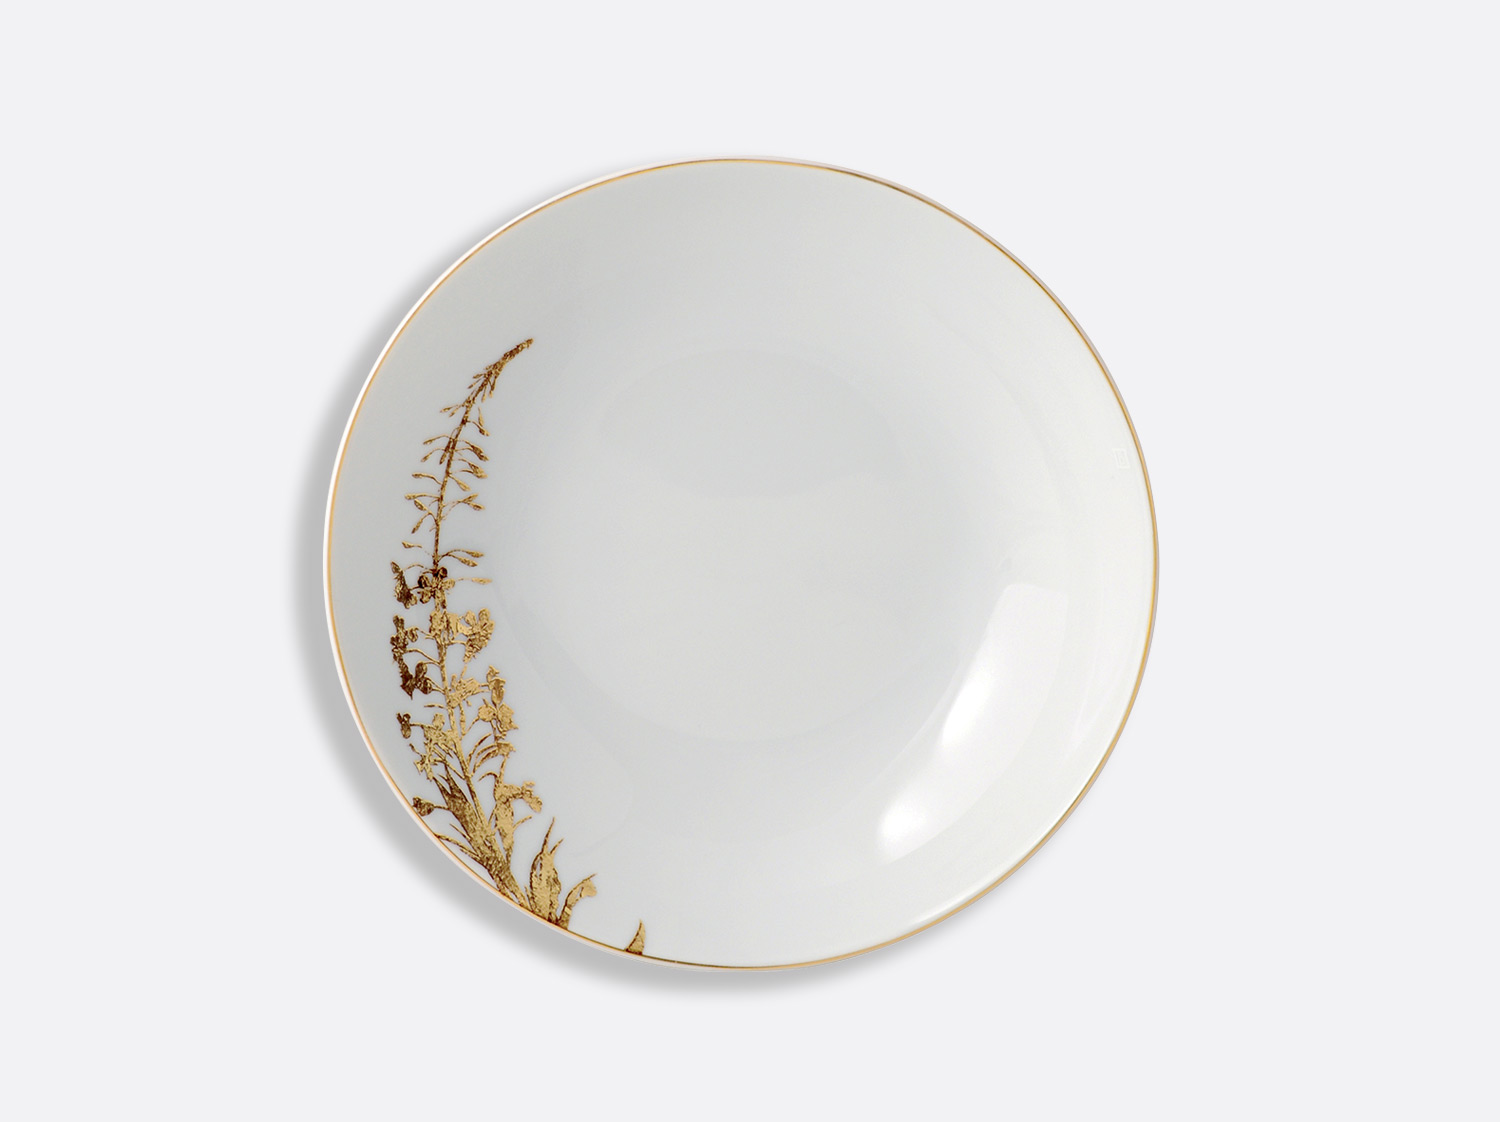 China coupe soup 19 cm of the collection Vegetal gold | Bernardaud